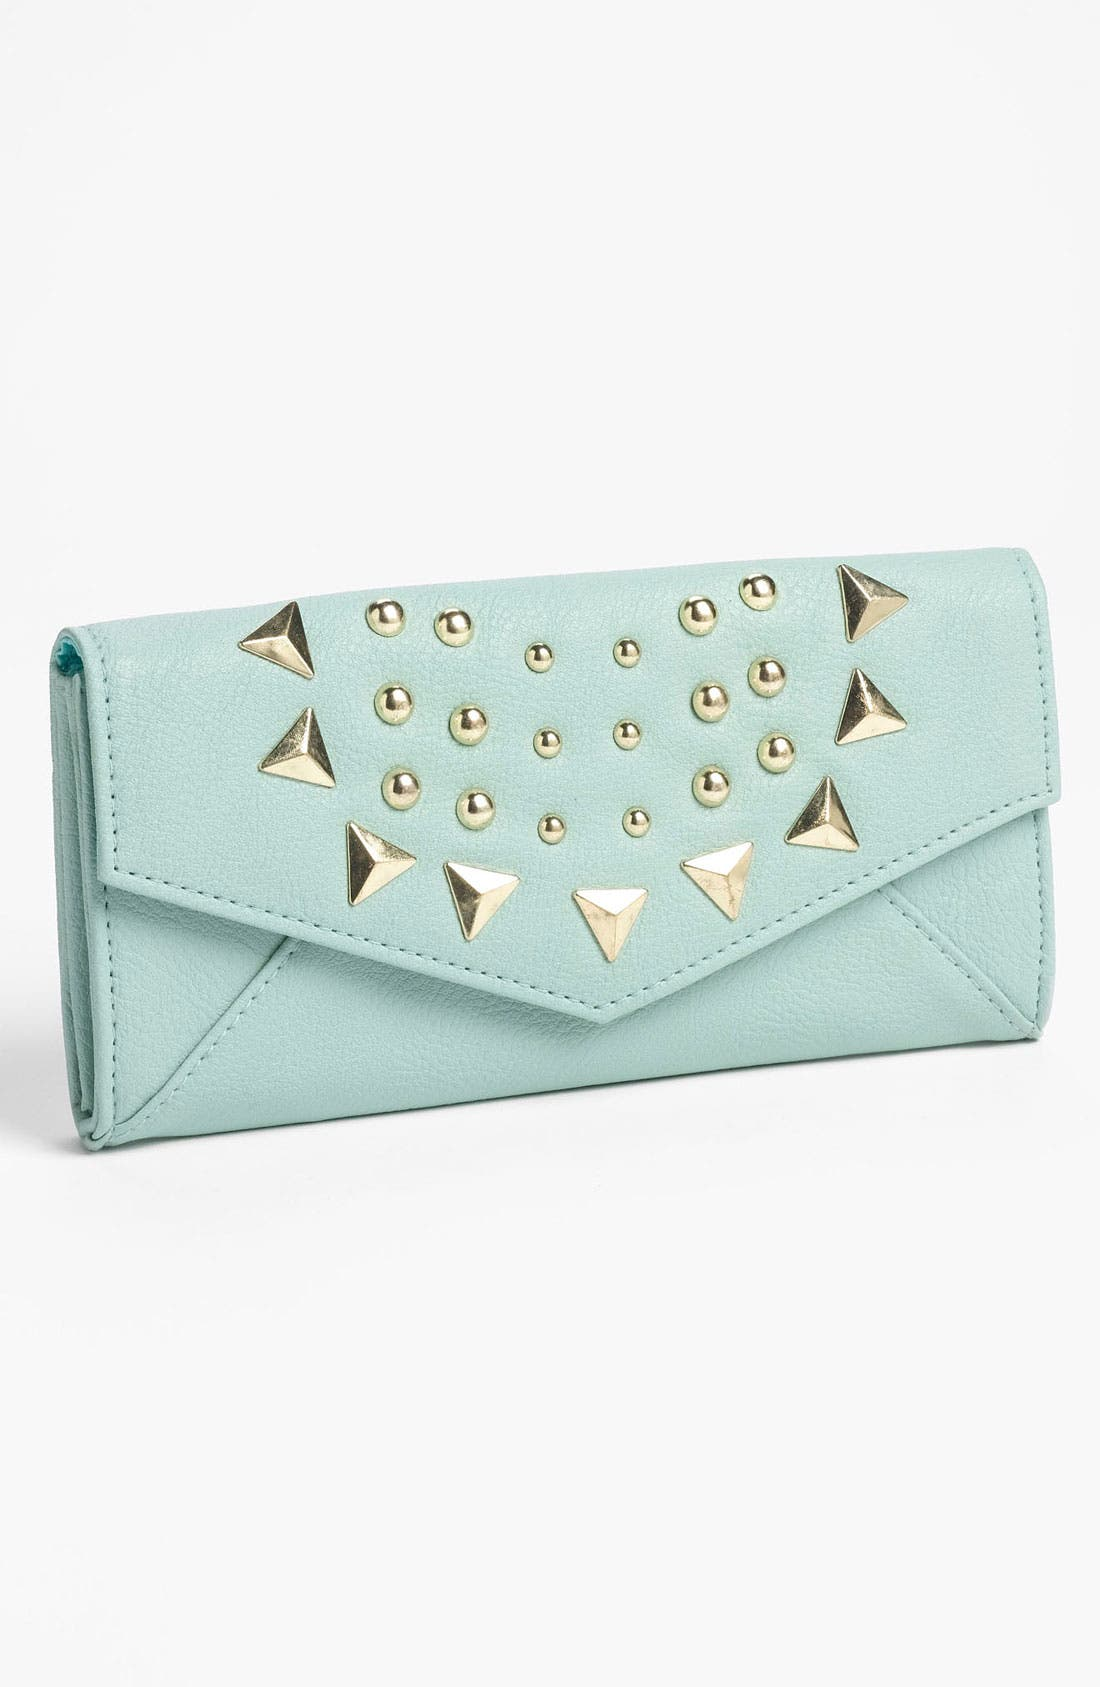 Alternate Image 1 Selected - Lulu Studded Envelope Wallet